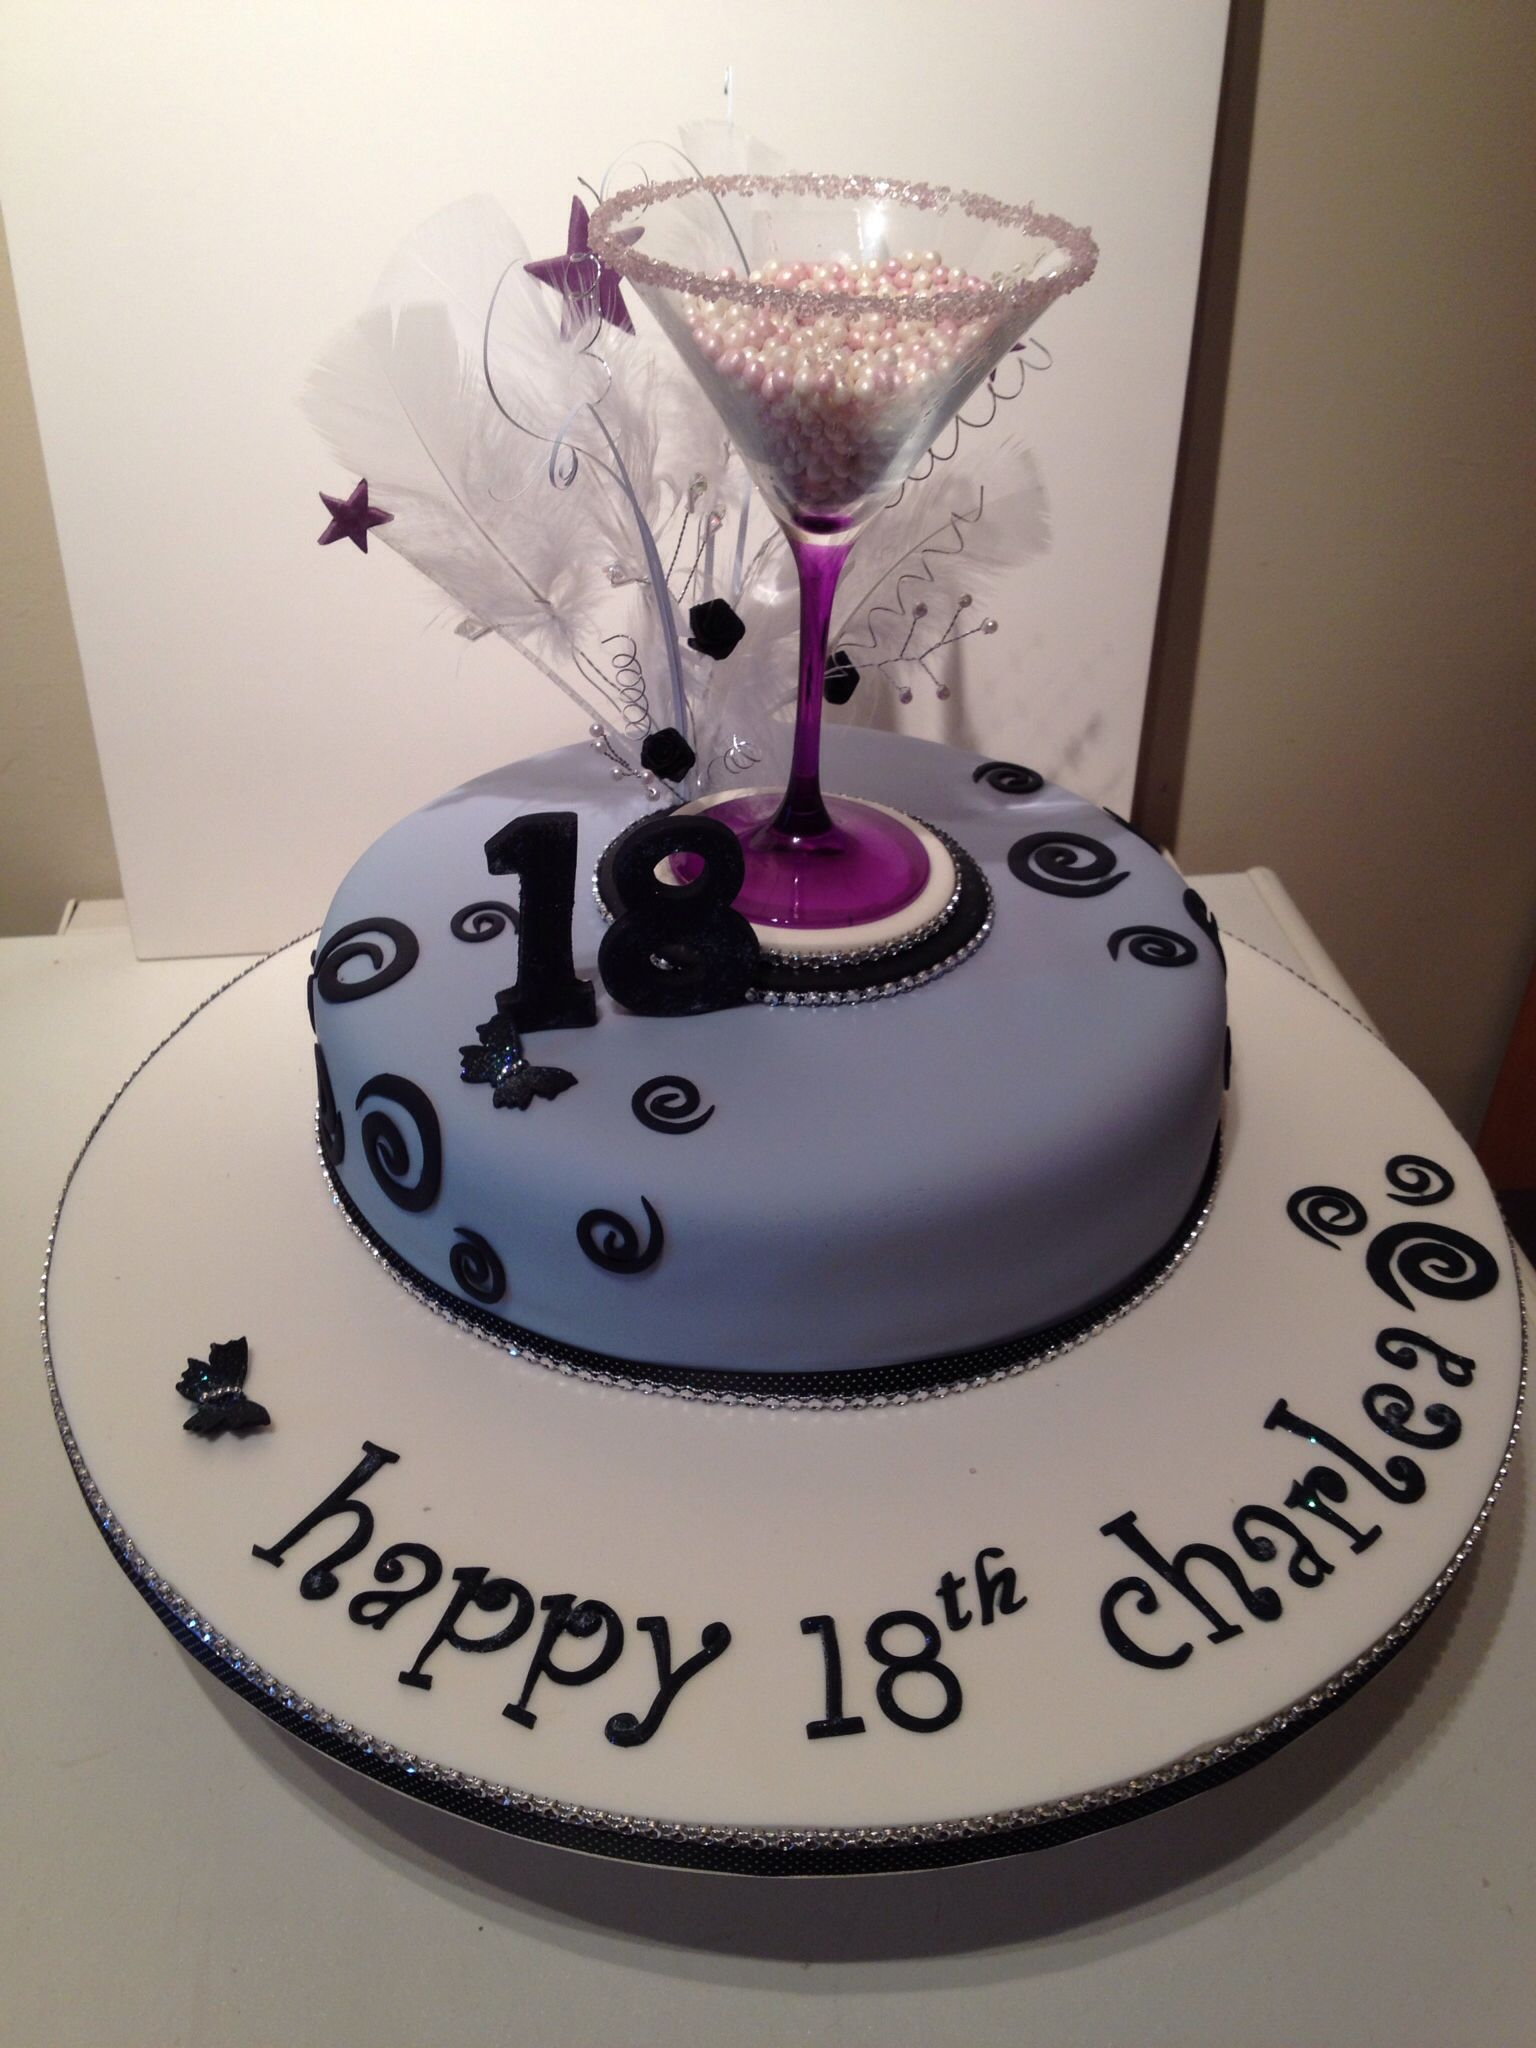 Pin 18th birthday cakes for girls cake ideas a girl cake for 18th cake decoration